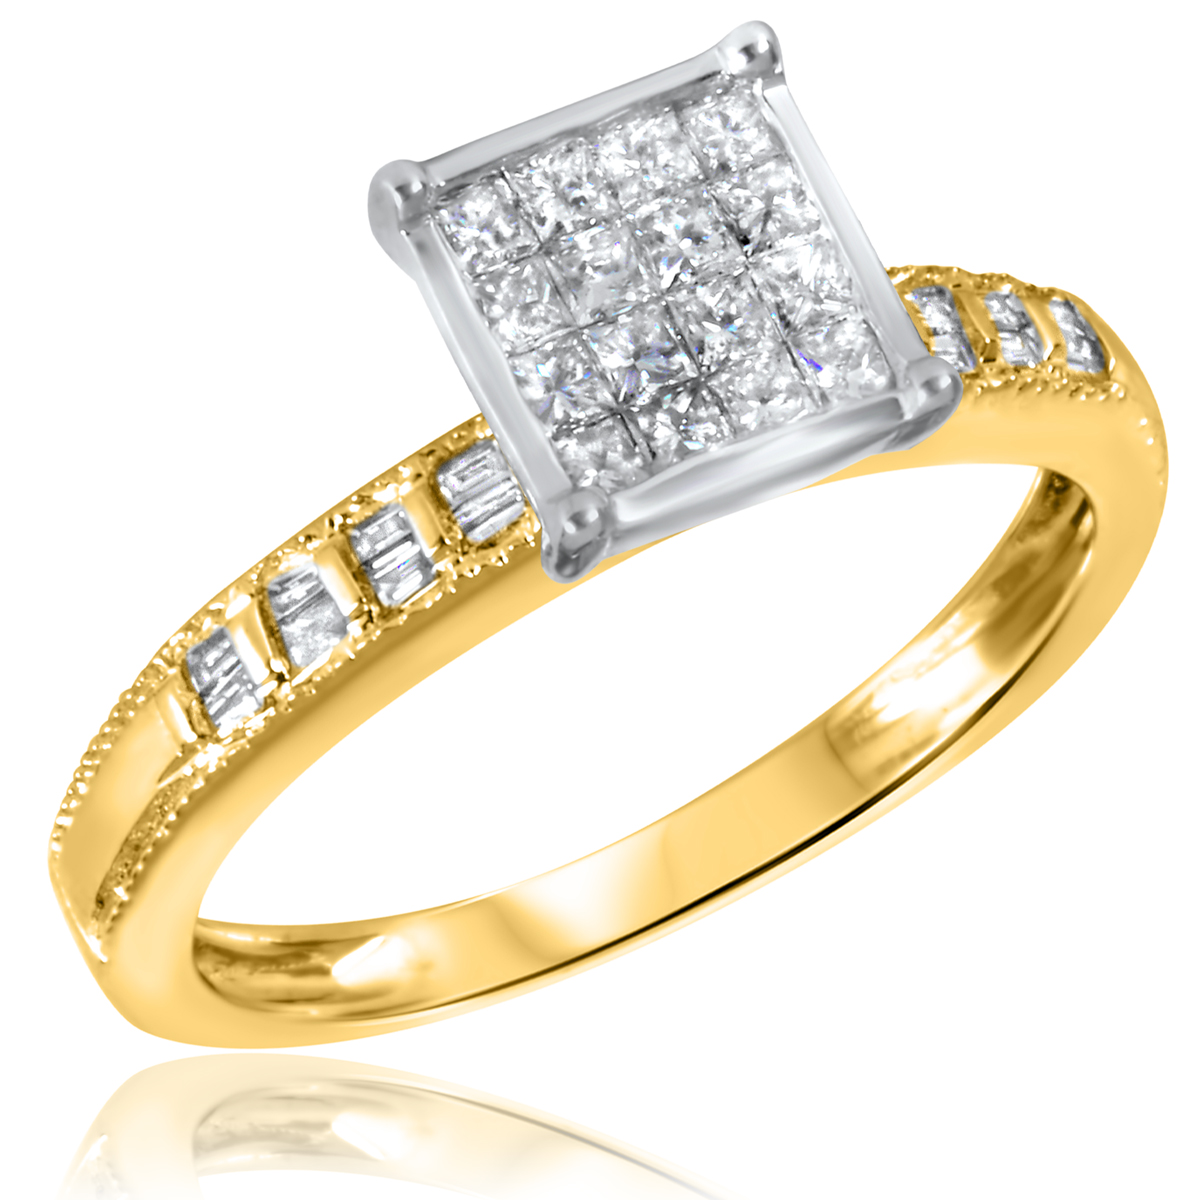 1/2 CT. T.W. Diamond Ladies Engagement Ring 14K Yellow Gold- Size 8